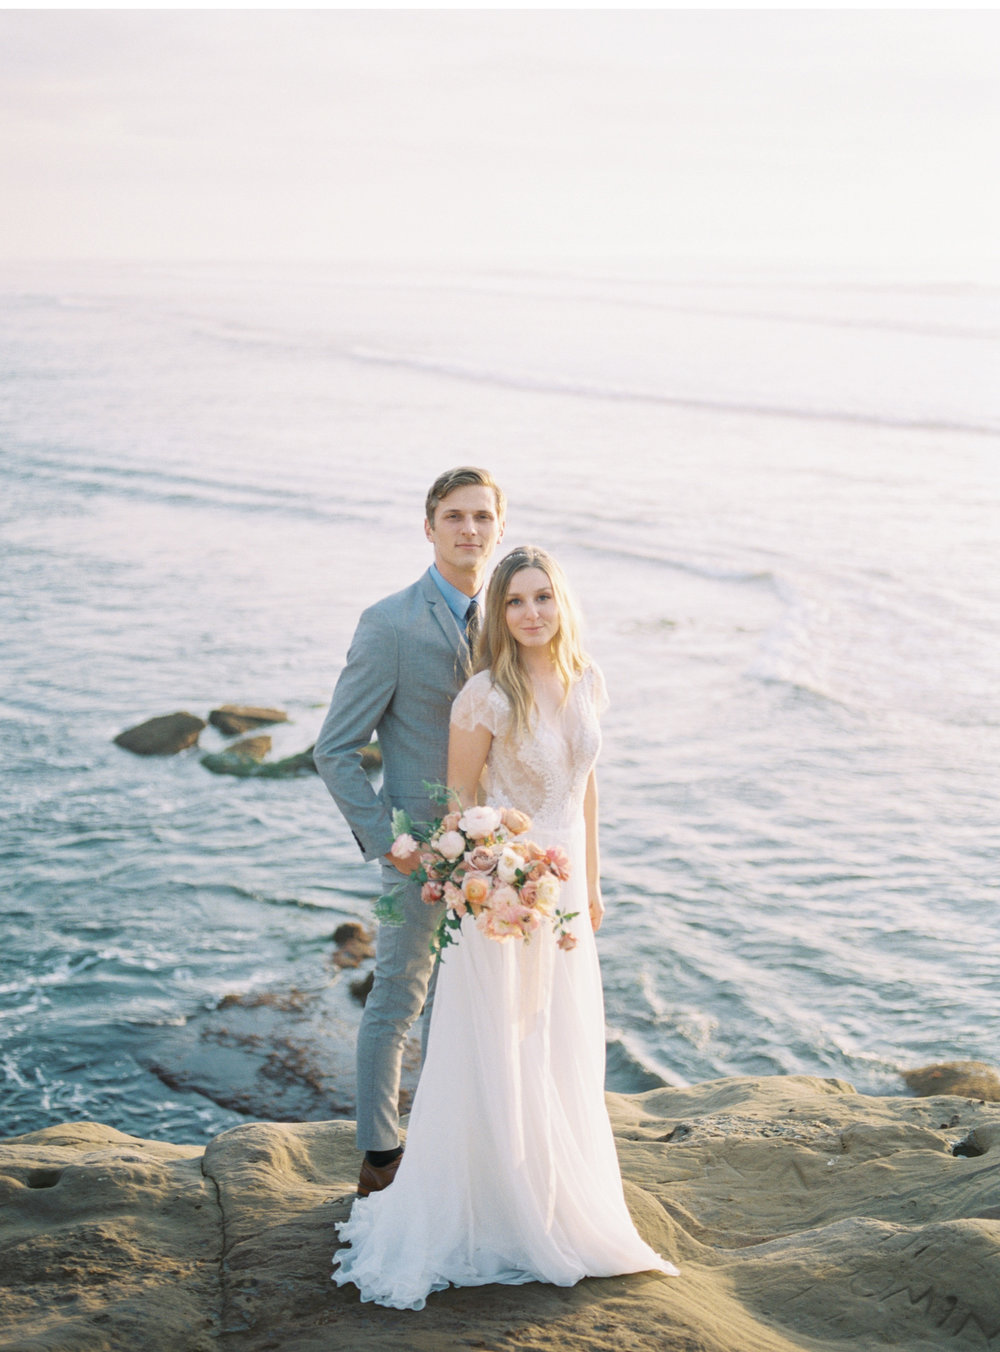 Fine-Art-Southern-California-Wedding-Photographer-Natalie-Schutt-Photography_01.jpg